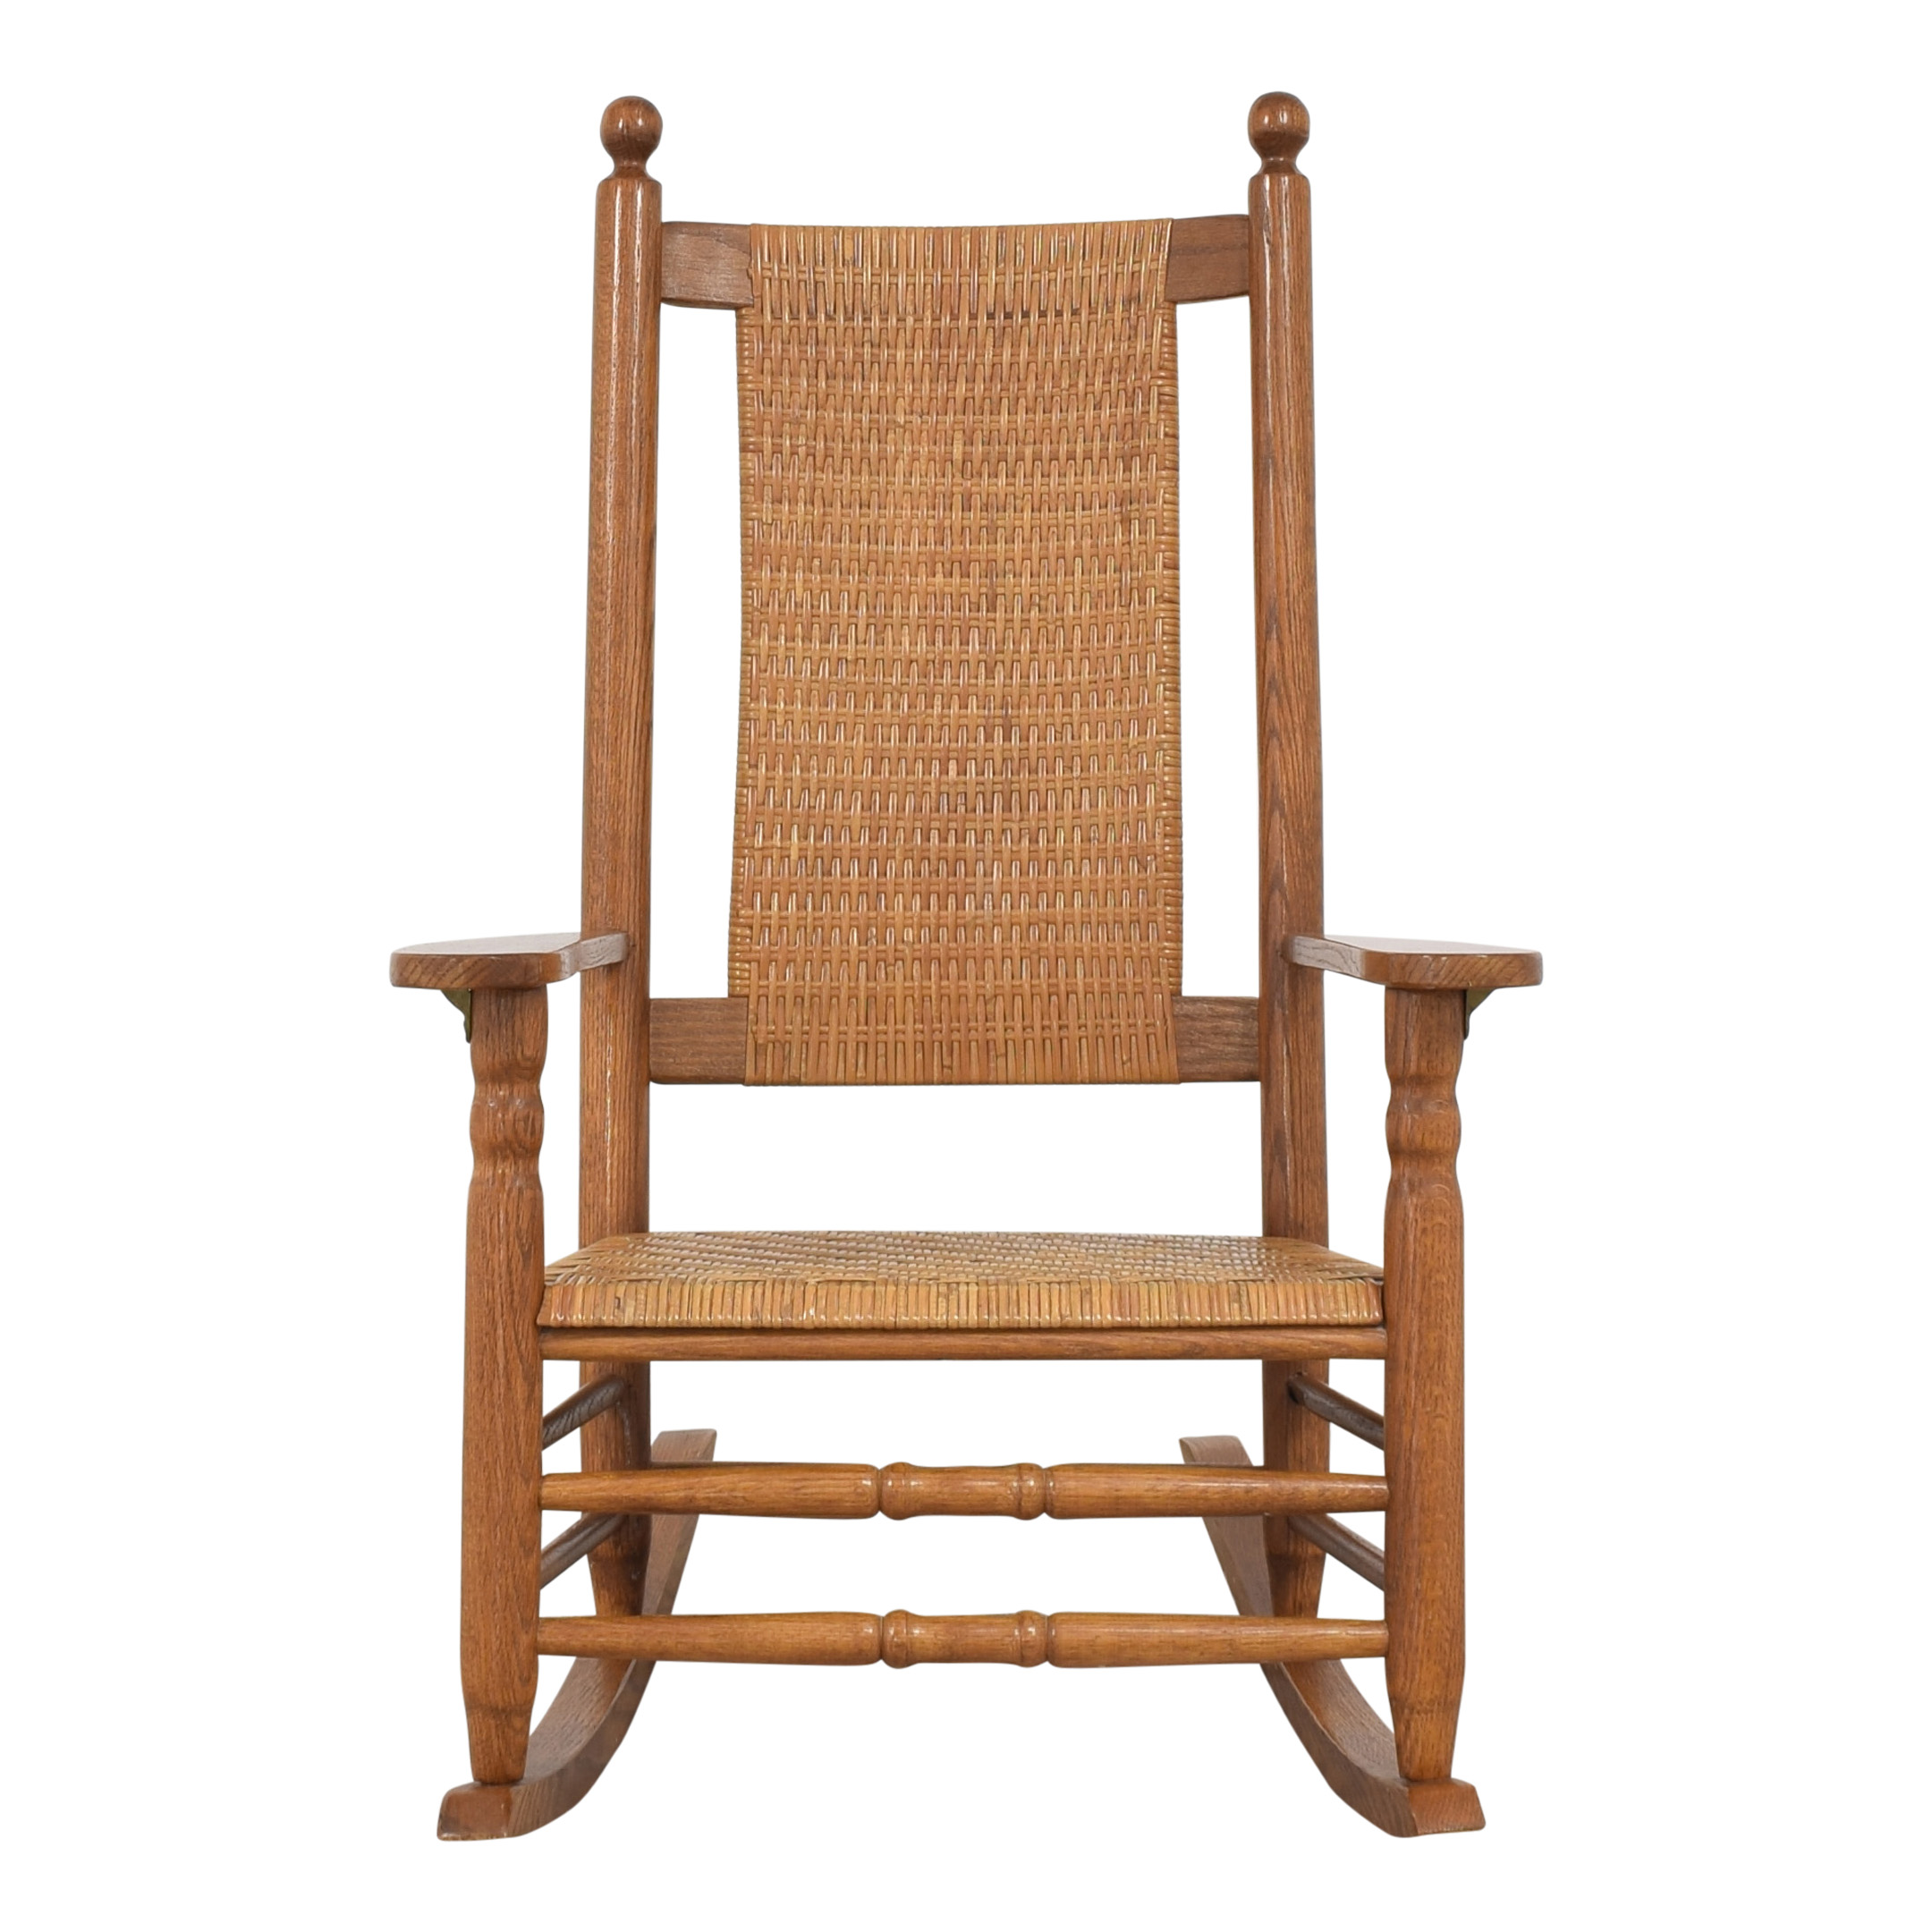 P&P Chair Company P&P Chair Company Kennedy Presidential Rocker coupon